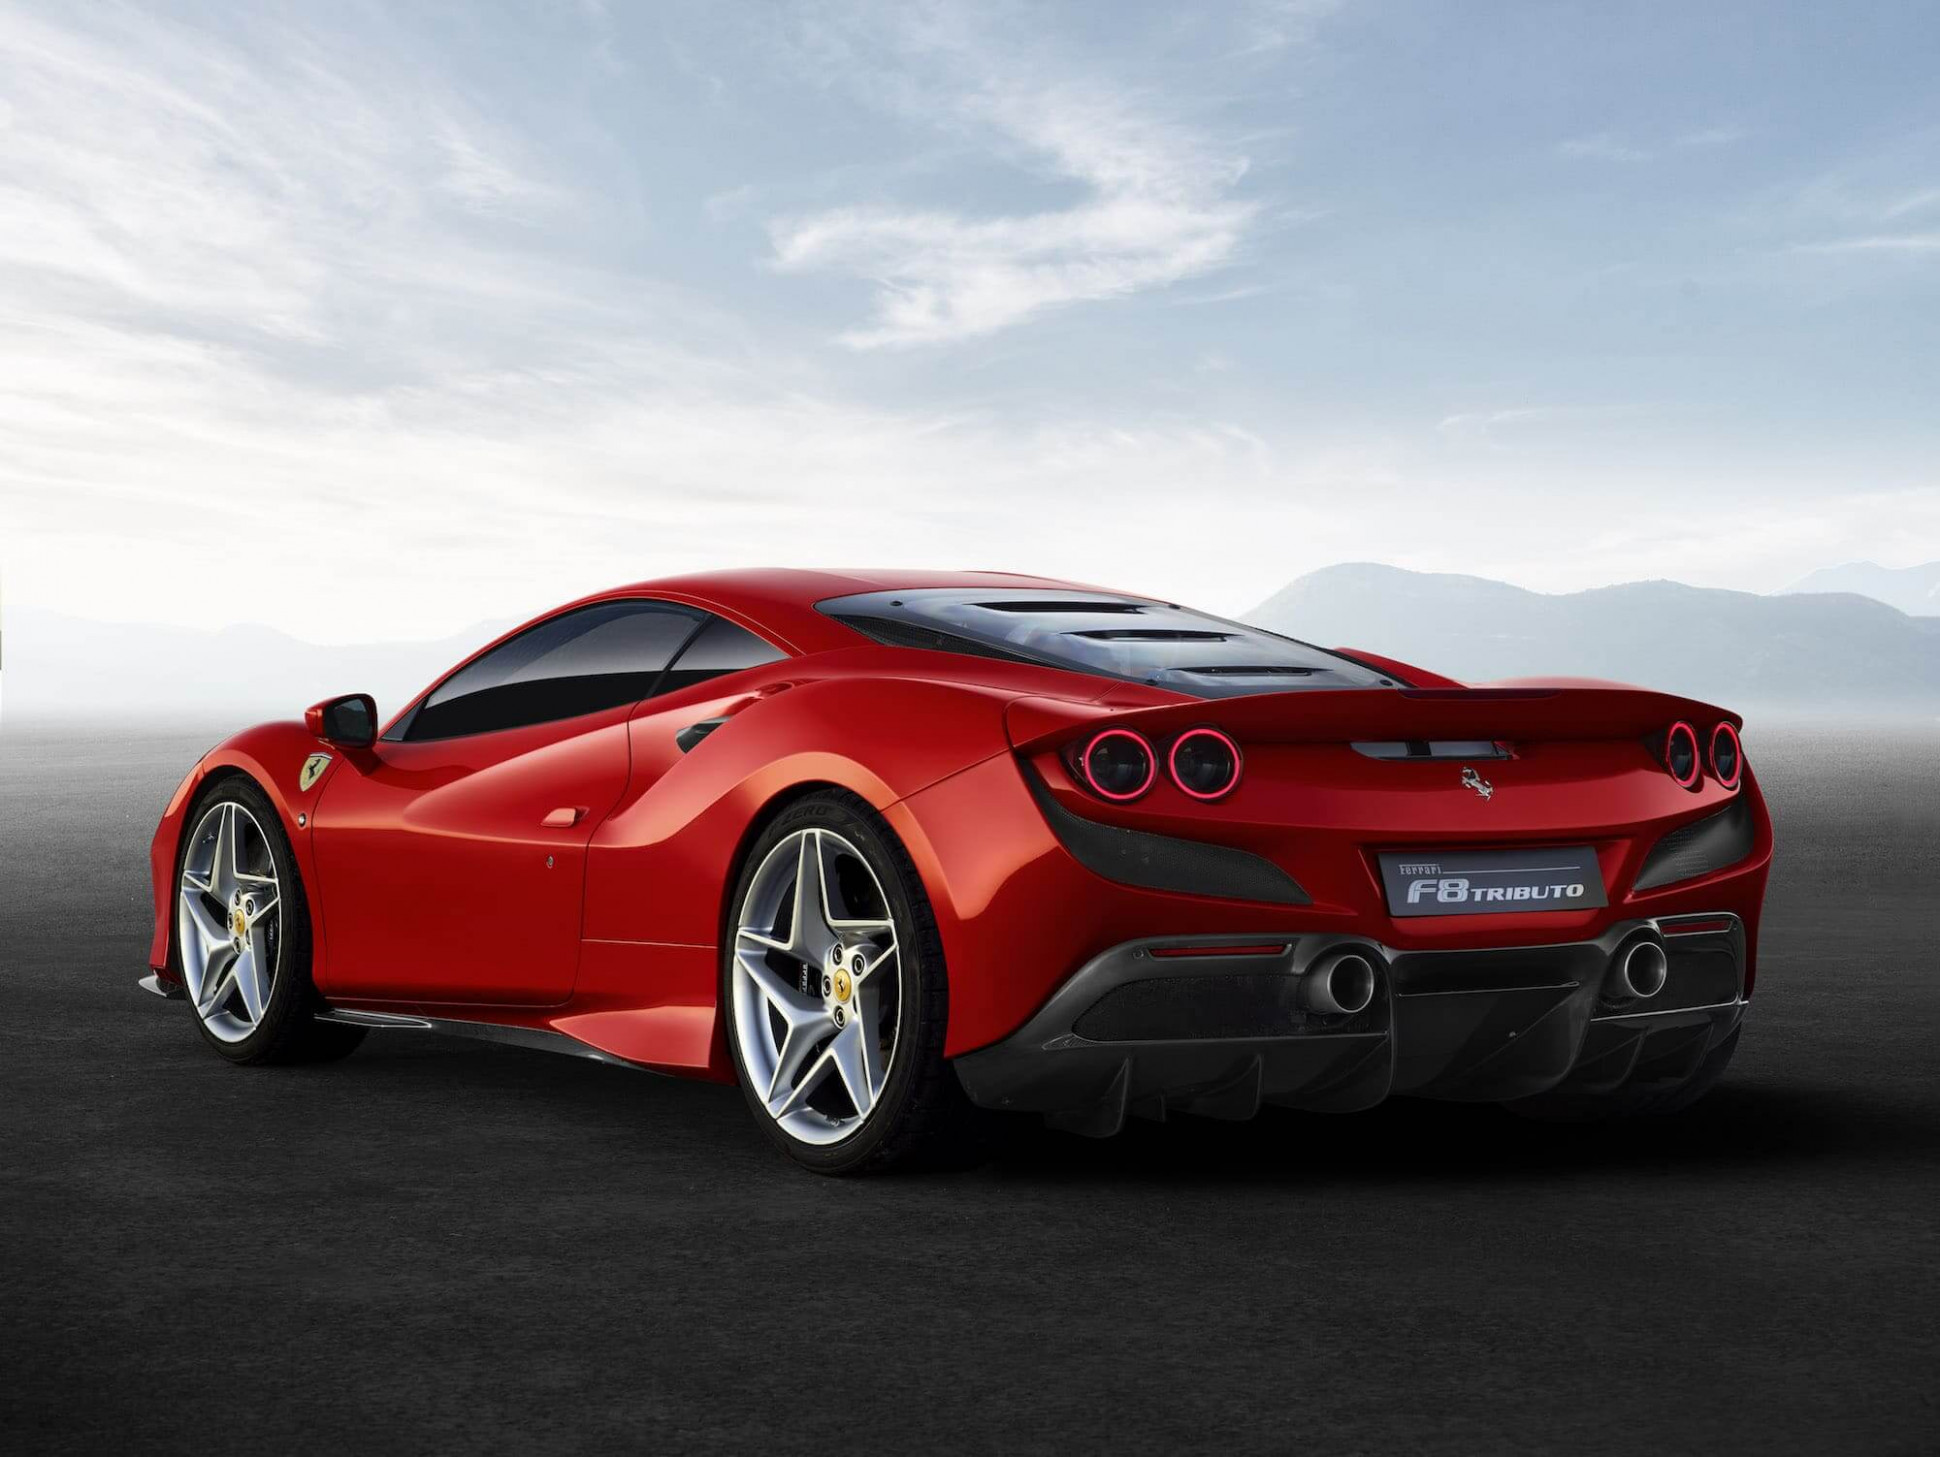 Ferrari To Reveal All-New Hybrid Supercar - AMENA Auto - ferrari q1 2020